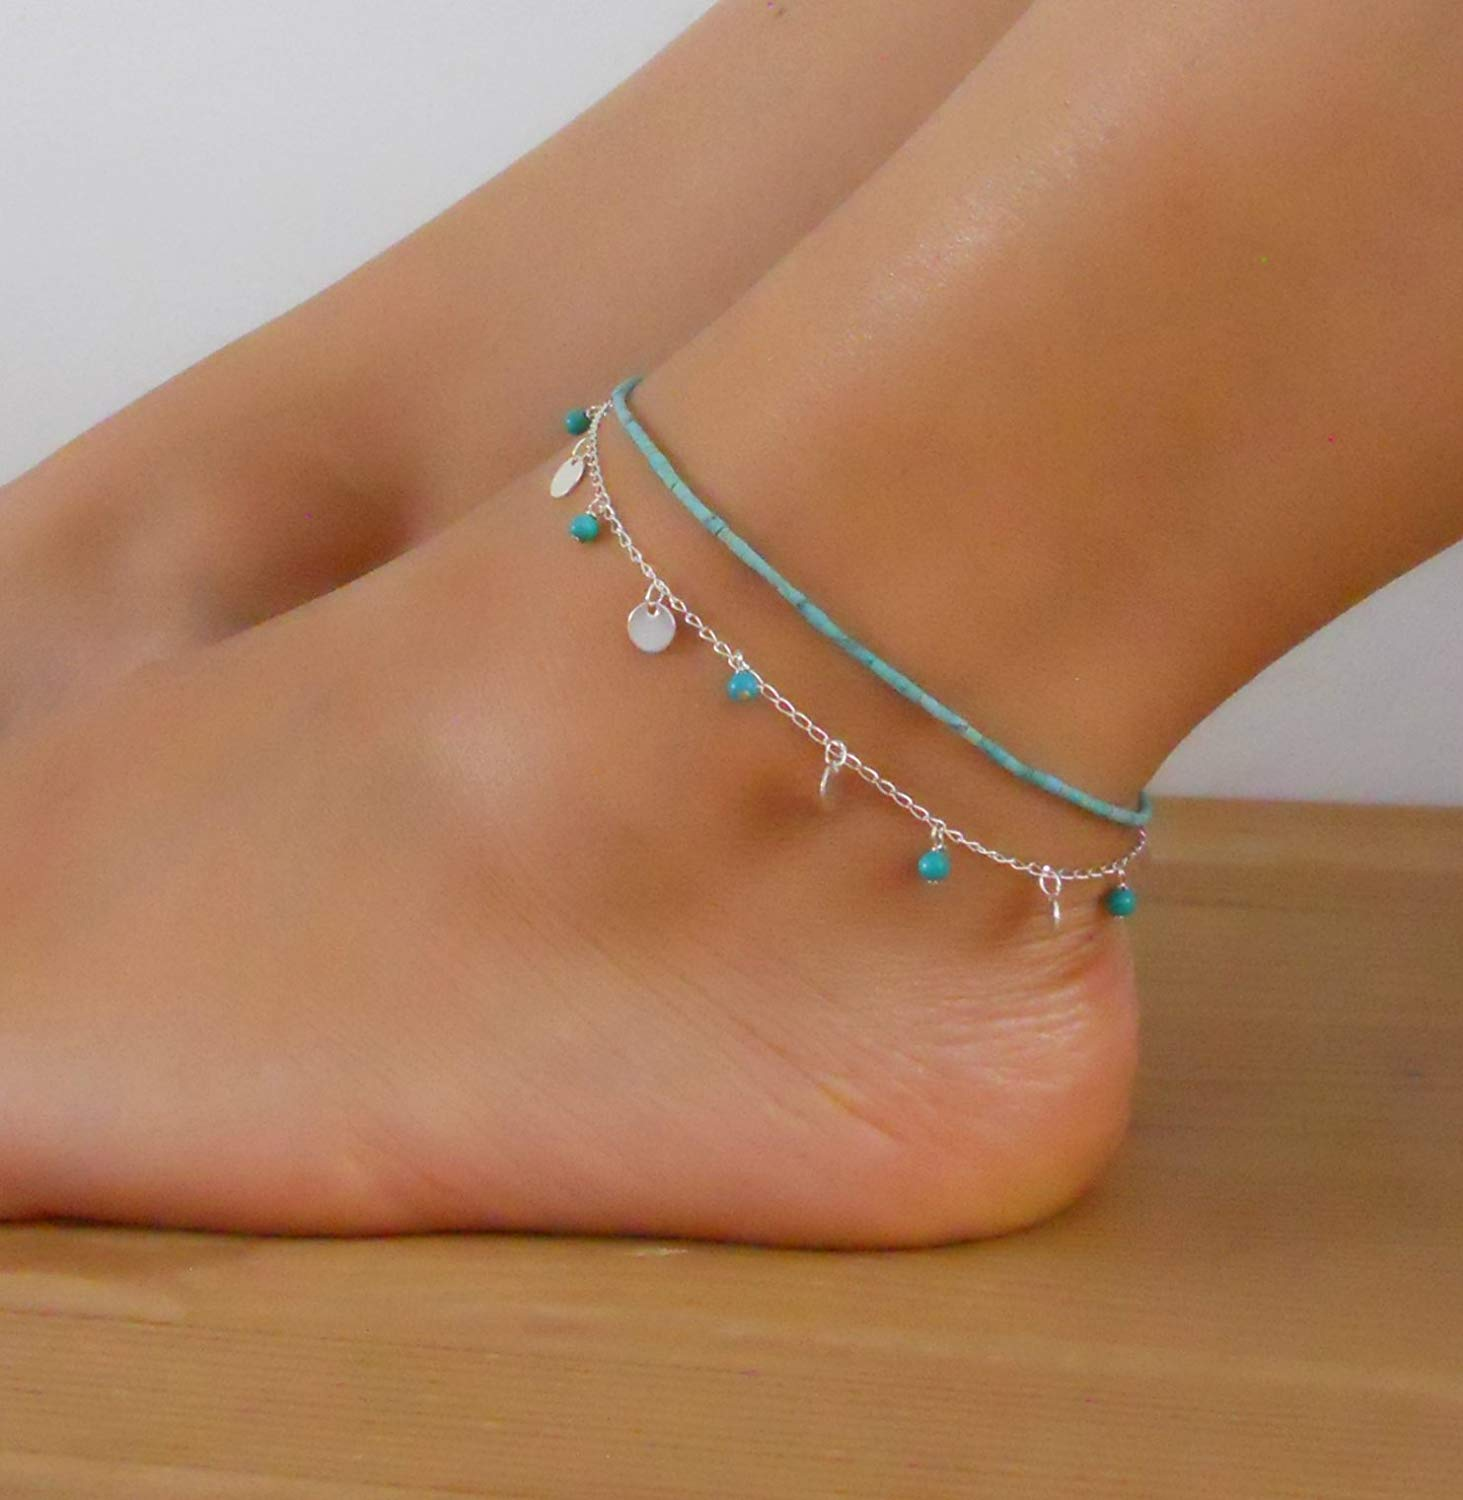 Handmade Designer Multistandard Double Layered Set Of 2 Anklets Turquoise Beads Anklet And Silver Coin Anklet